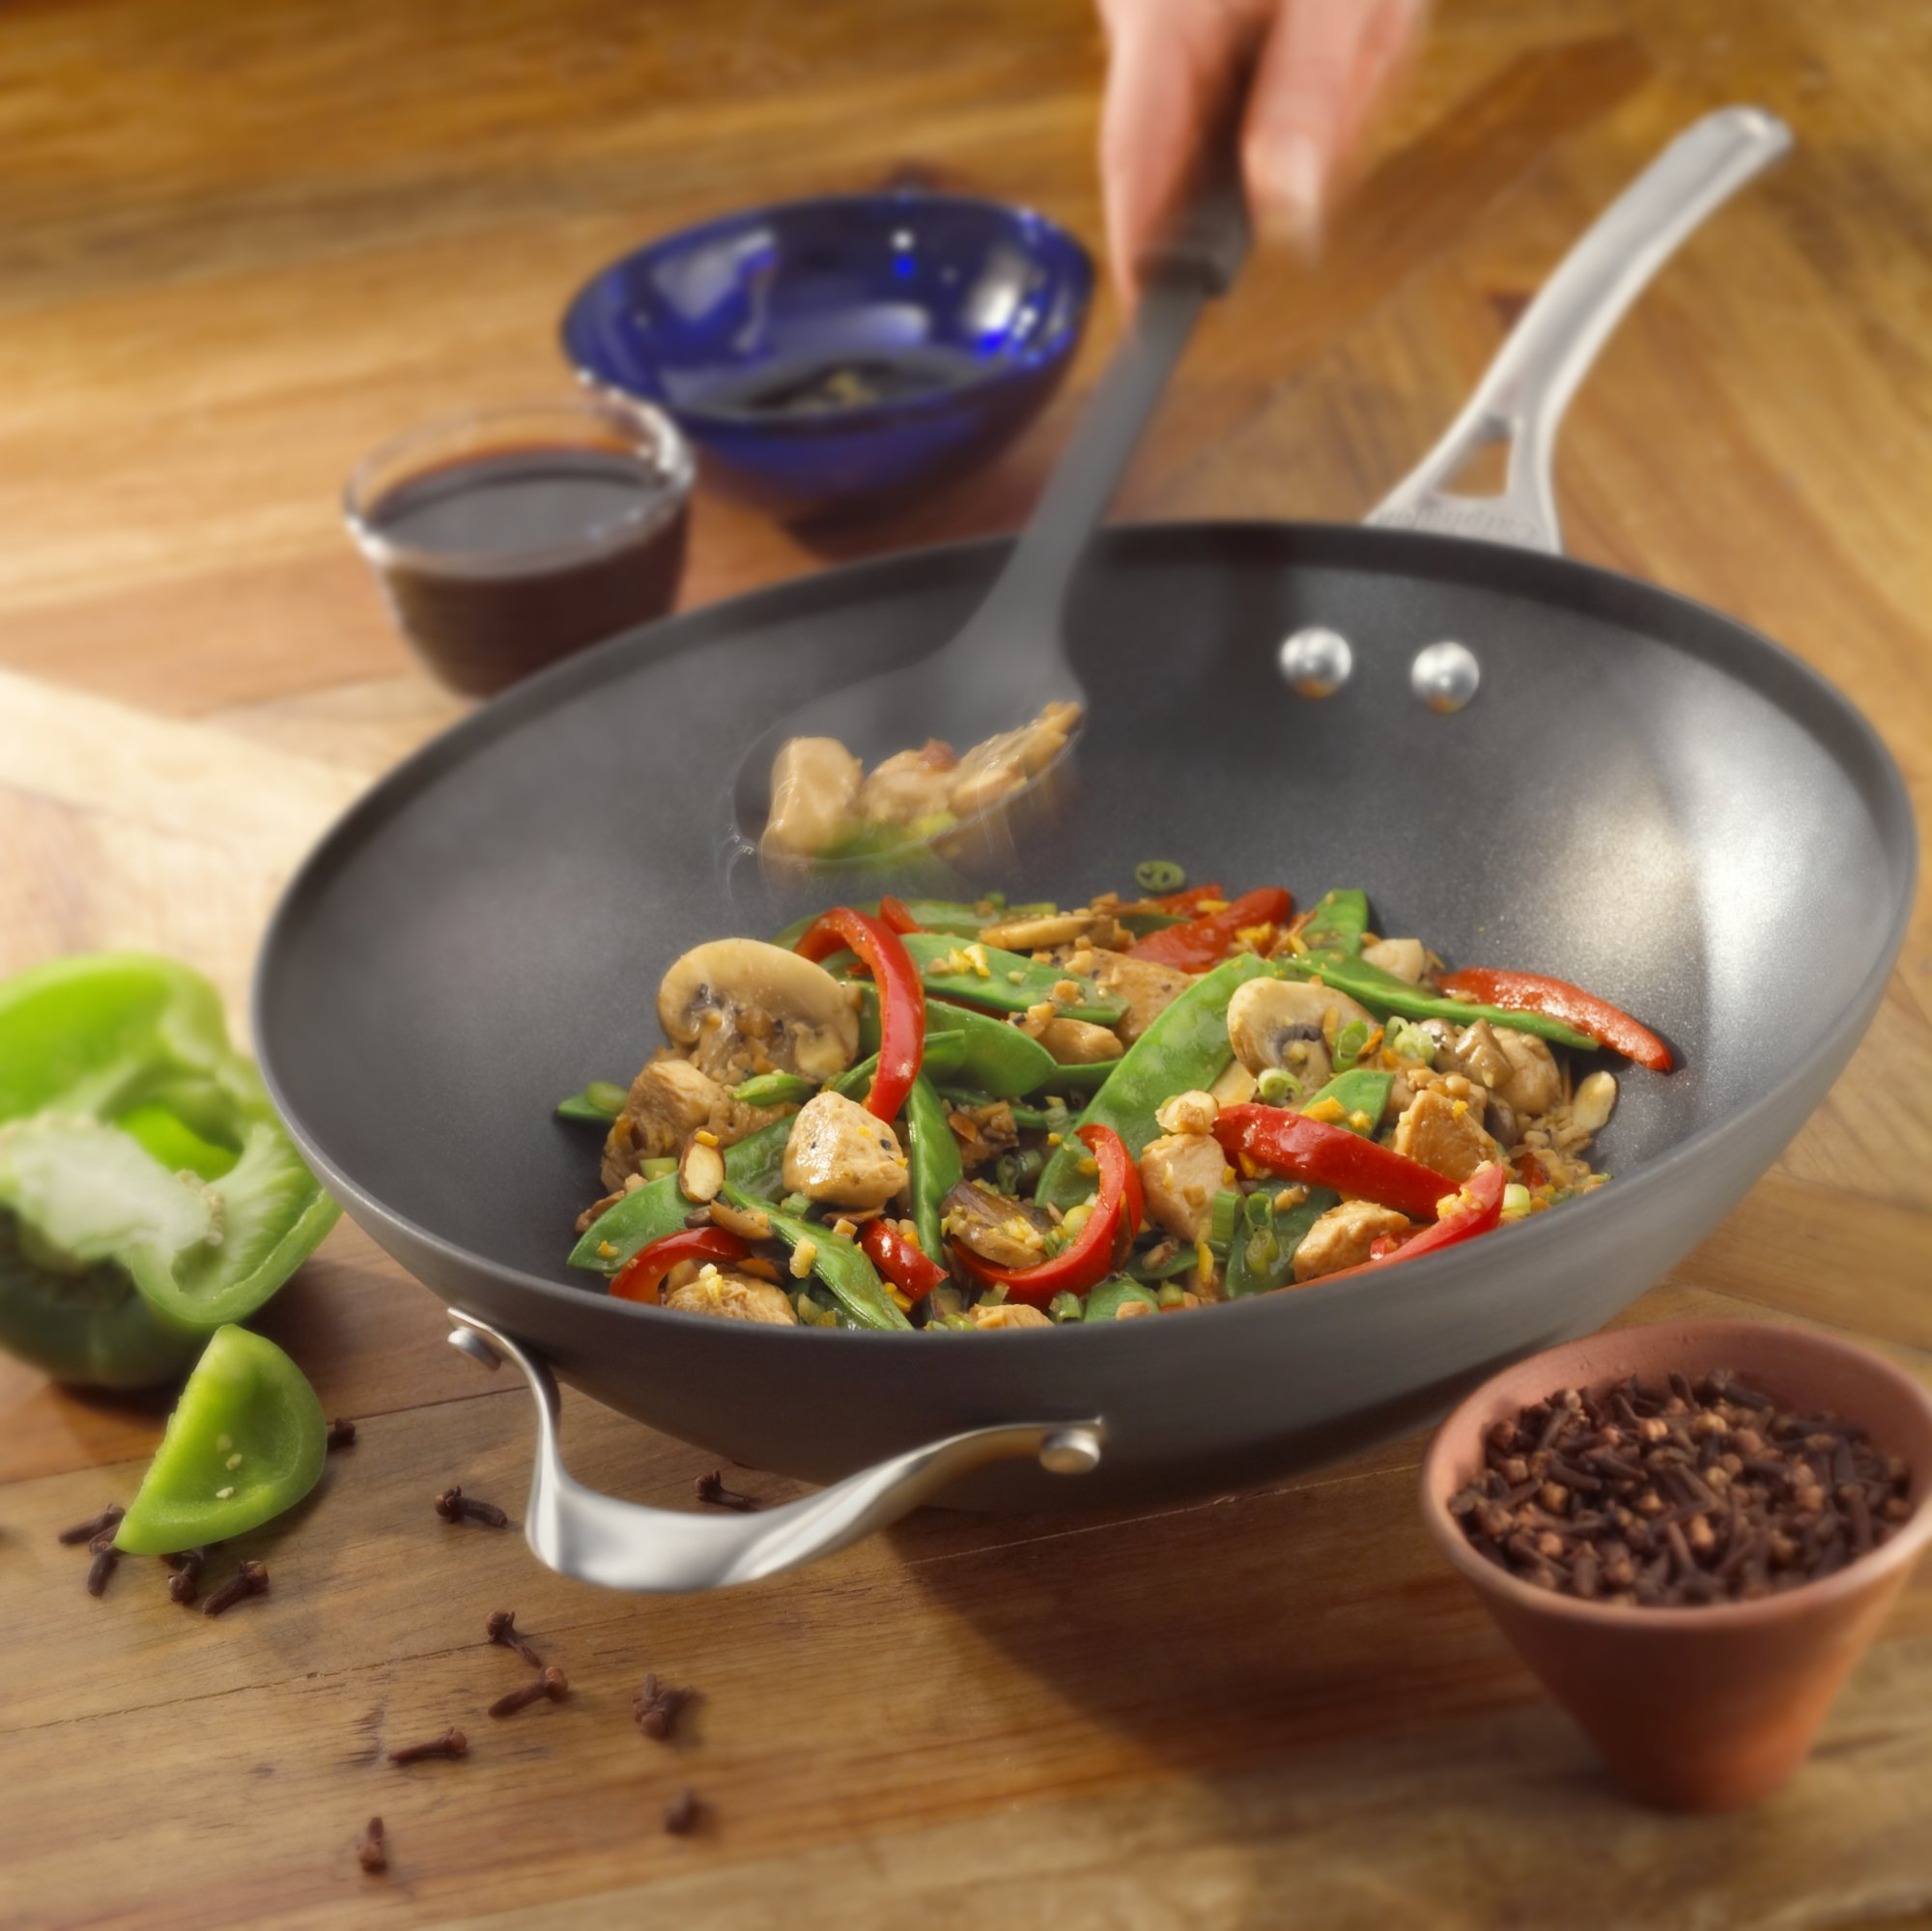 woks u0026 stir fry prepare delicious meals with these fastheating pans designed to work on most stovetops - Stir Fry Pan